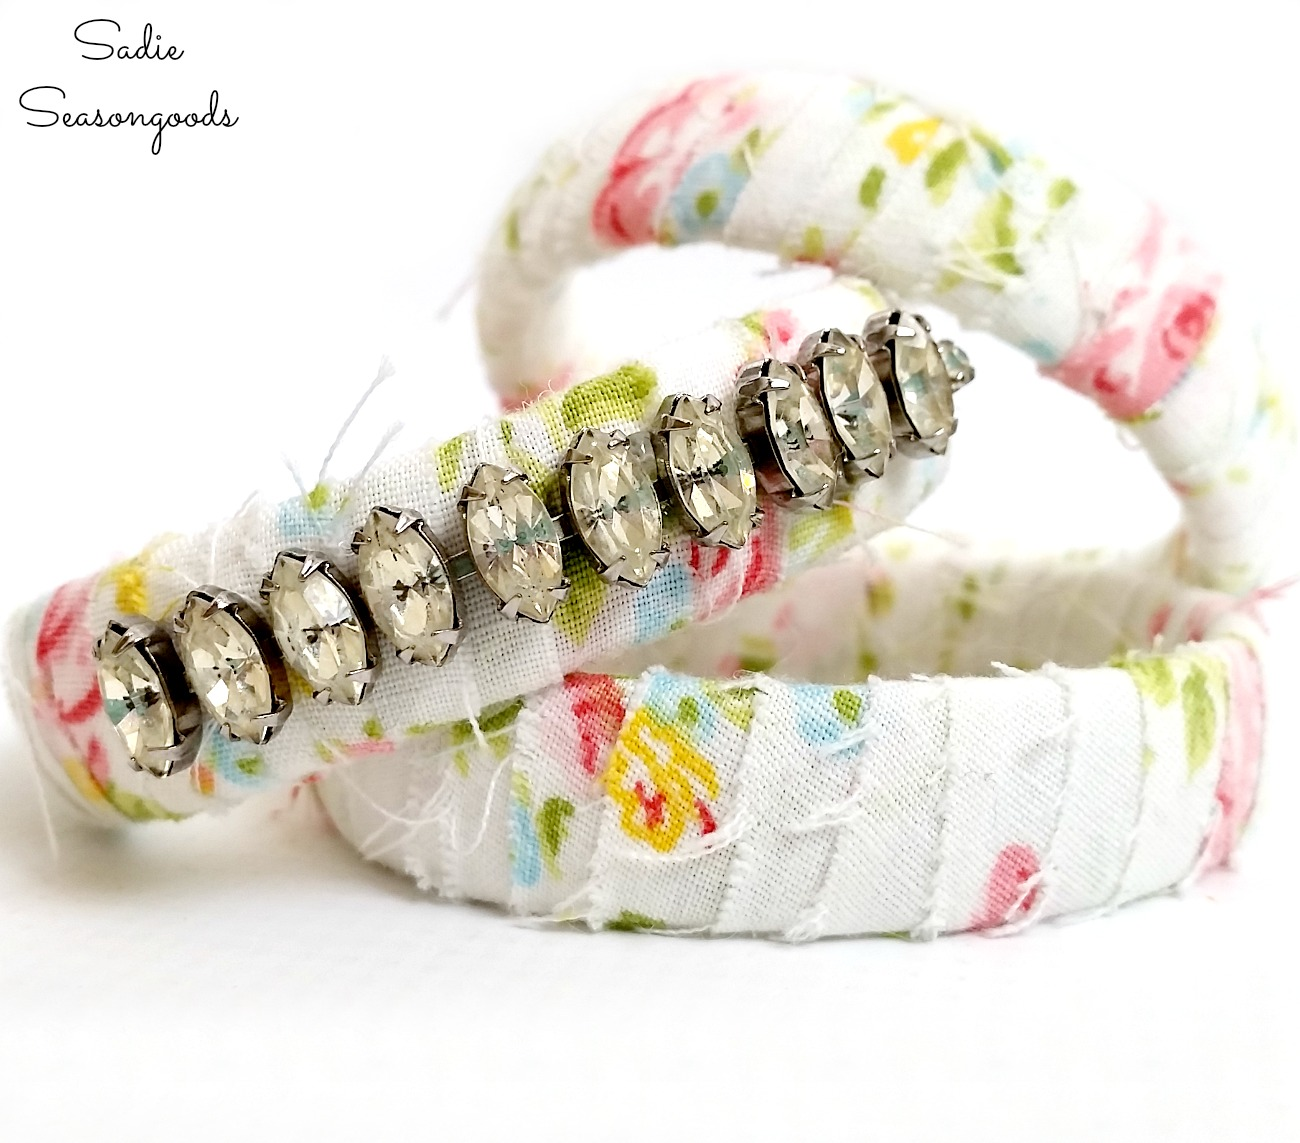 DIY Bracelets with Vintage Fabric and Broken Jewelry